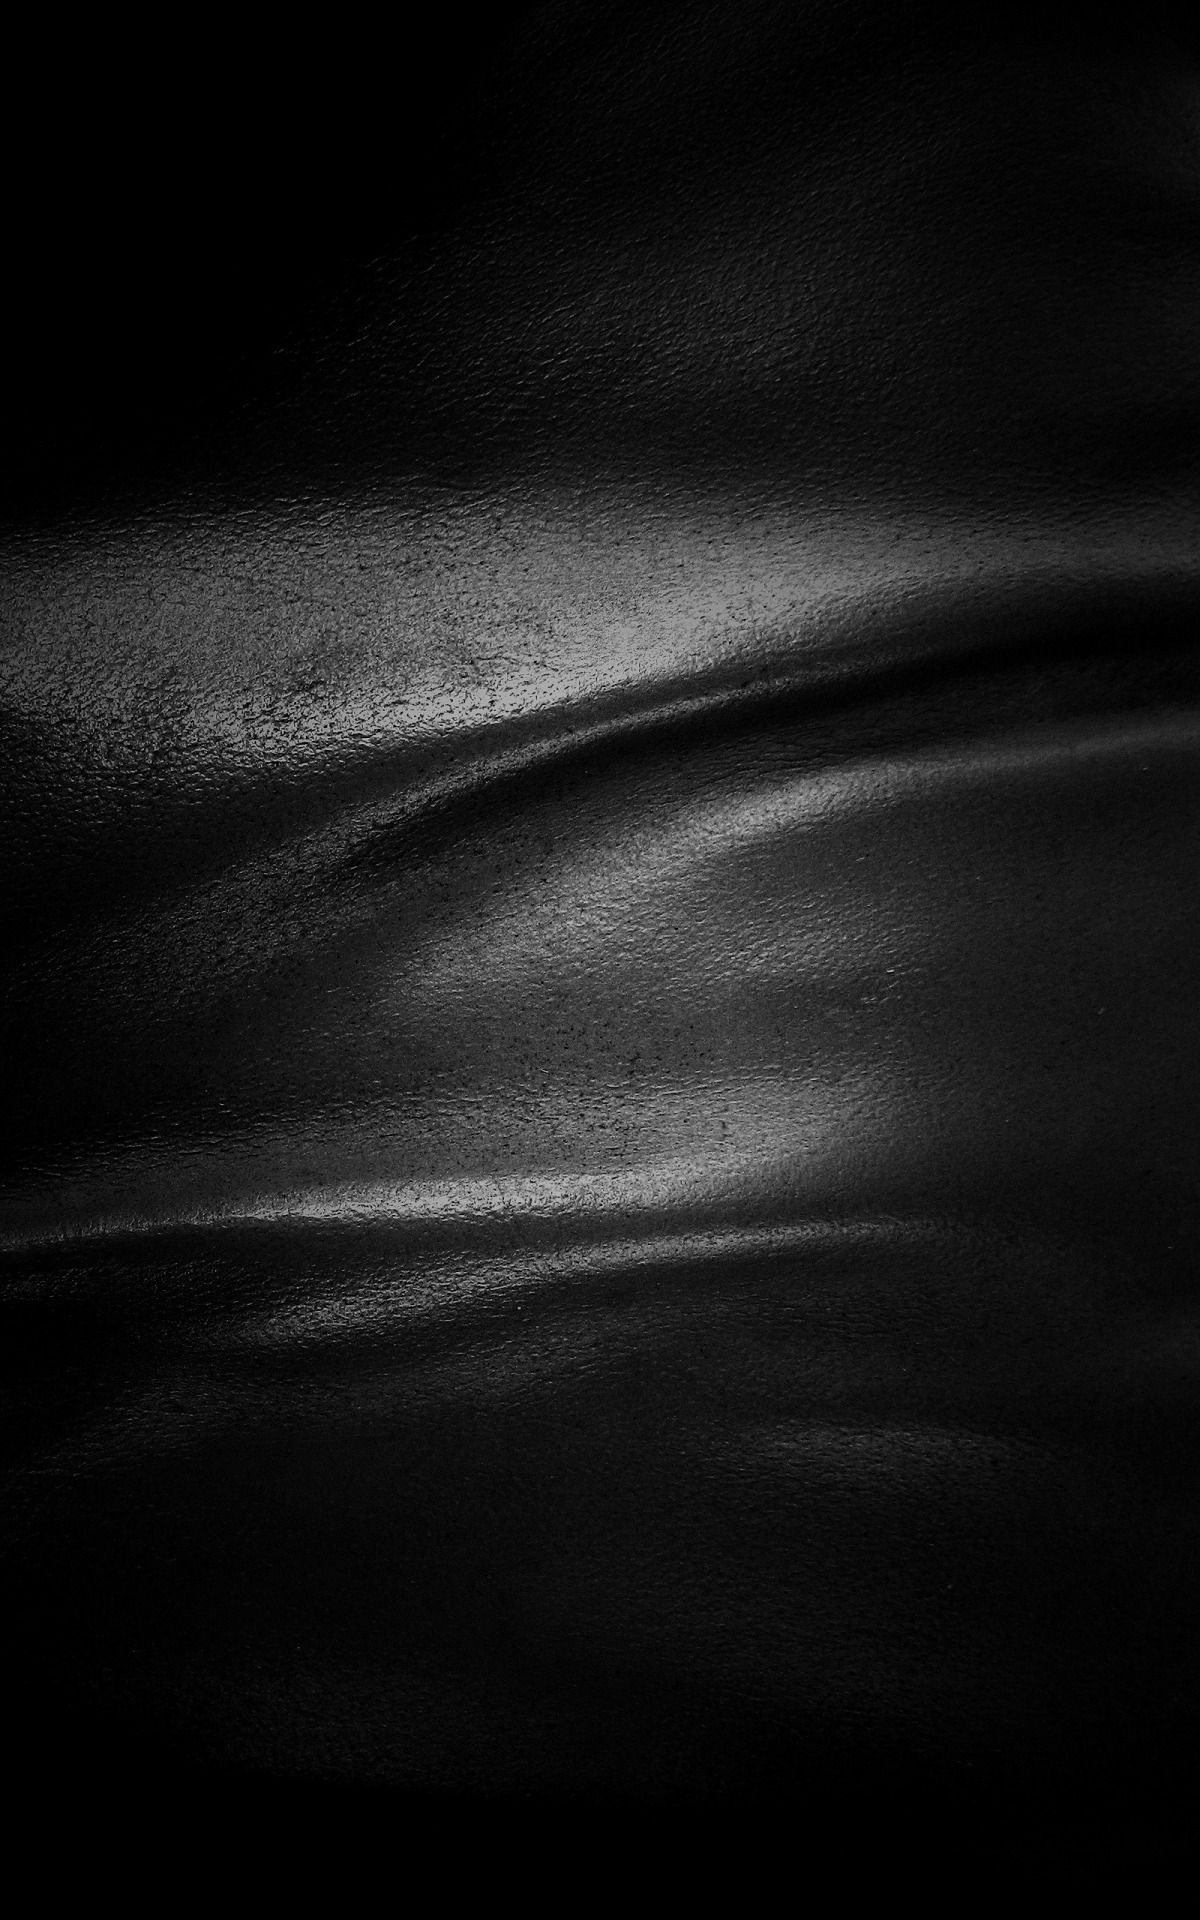 Black Leather Fabric Texture Black Leather Texture....